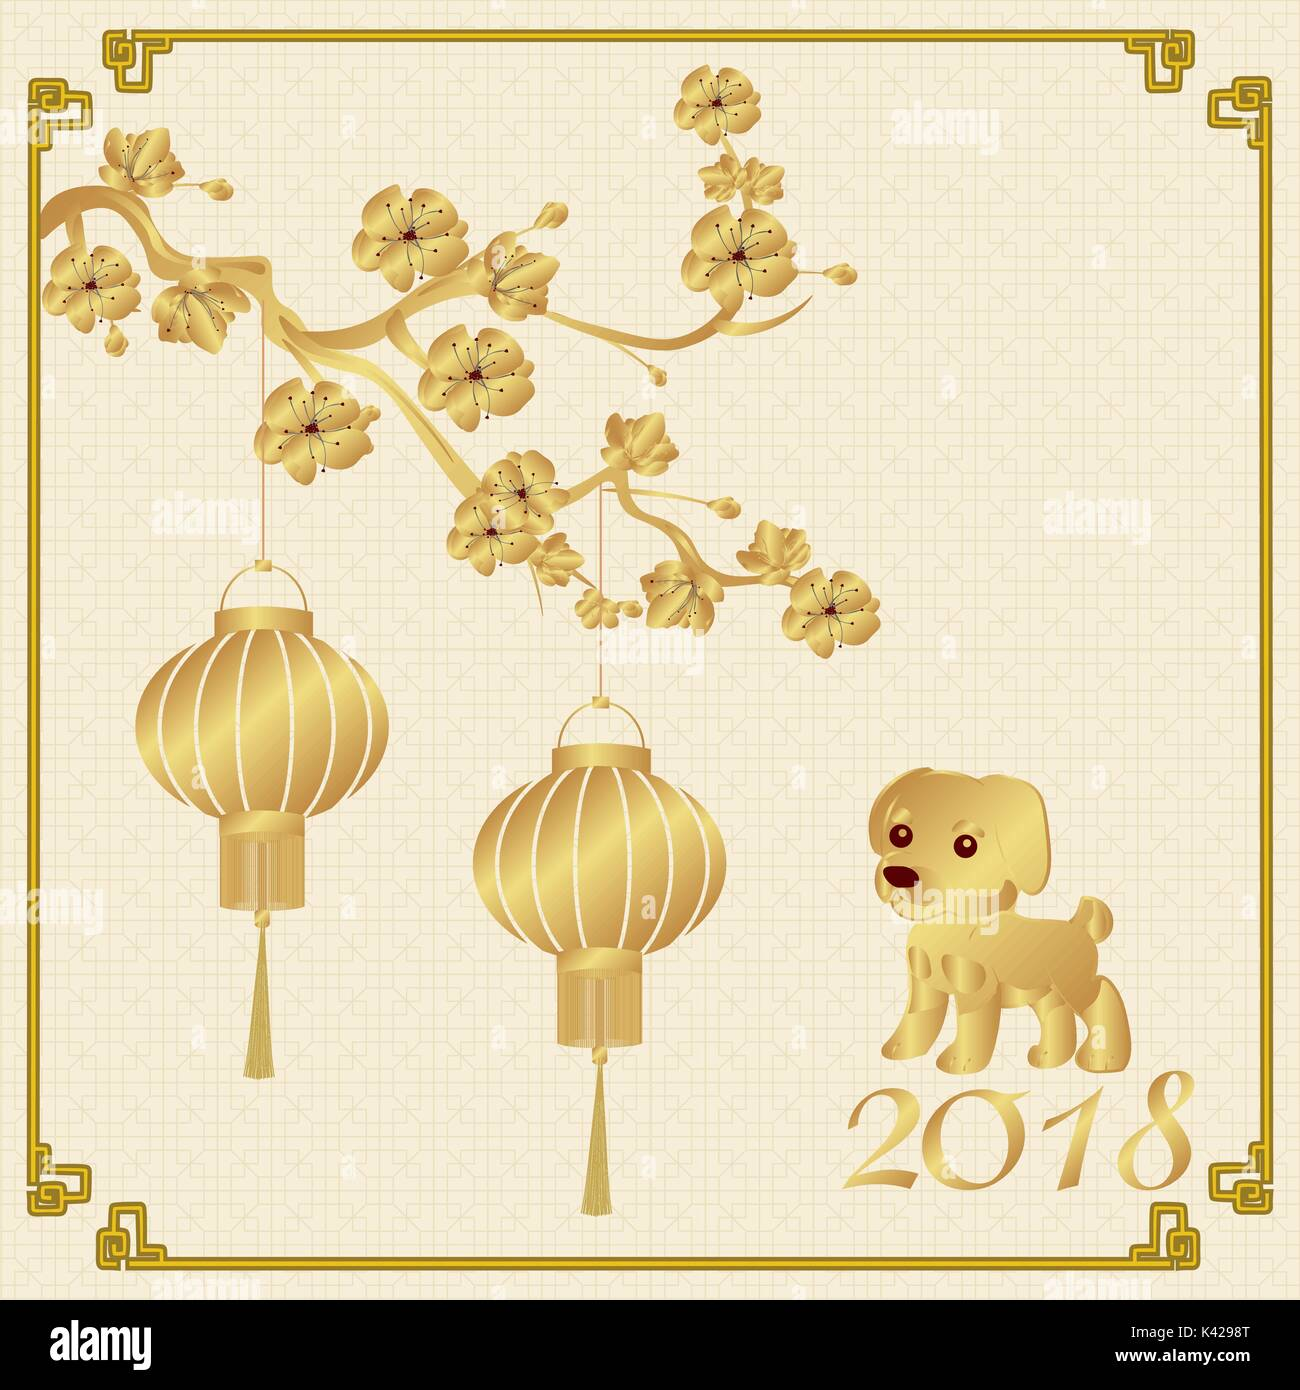 chinese new year 2018 year of the dog stylized under bronze chinese lanterns on a cherry branch background for the paper illustration